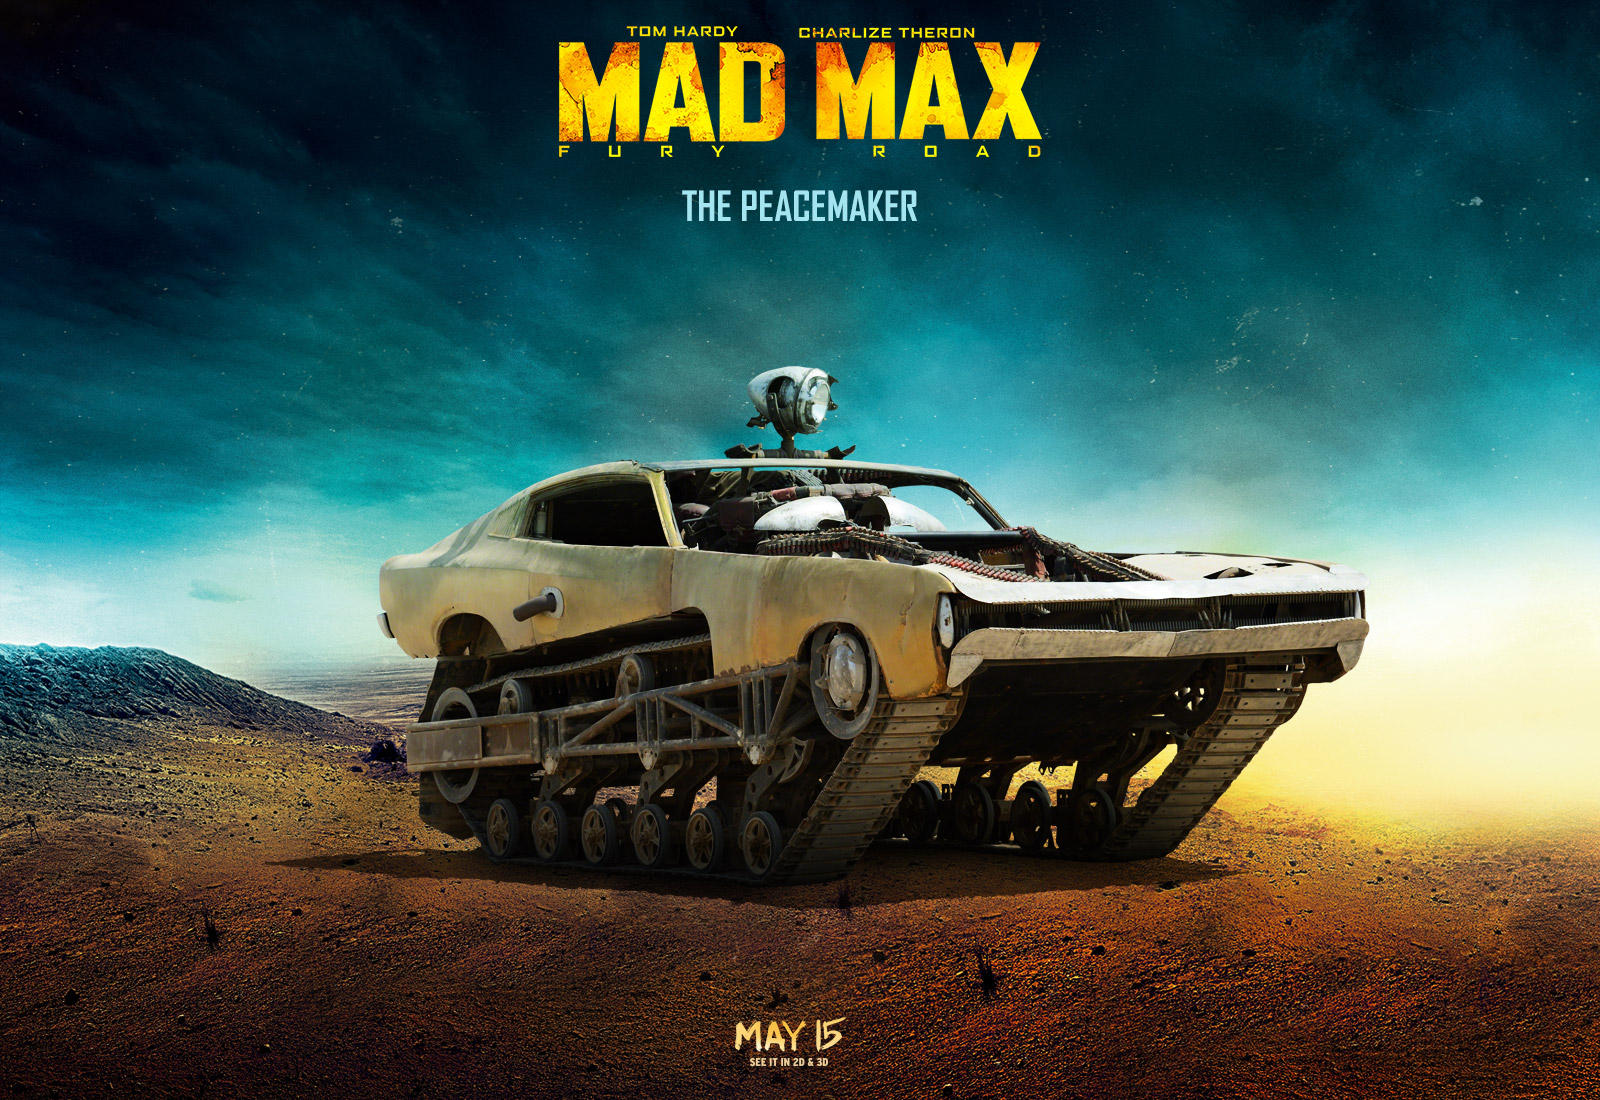 madmax-peacemaker-cars